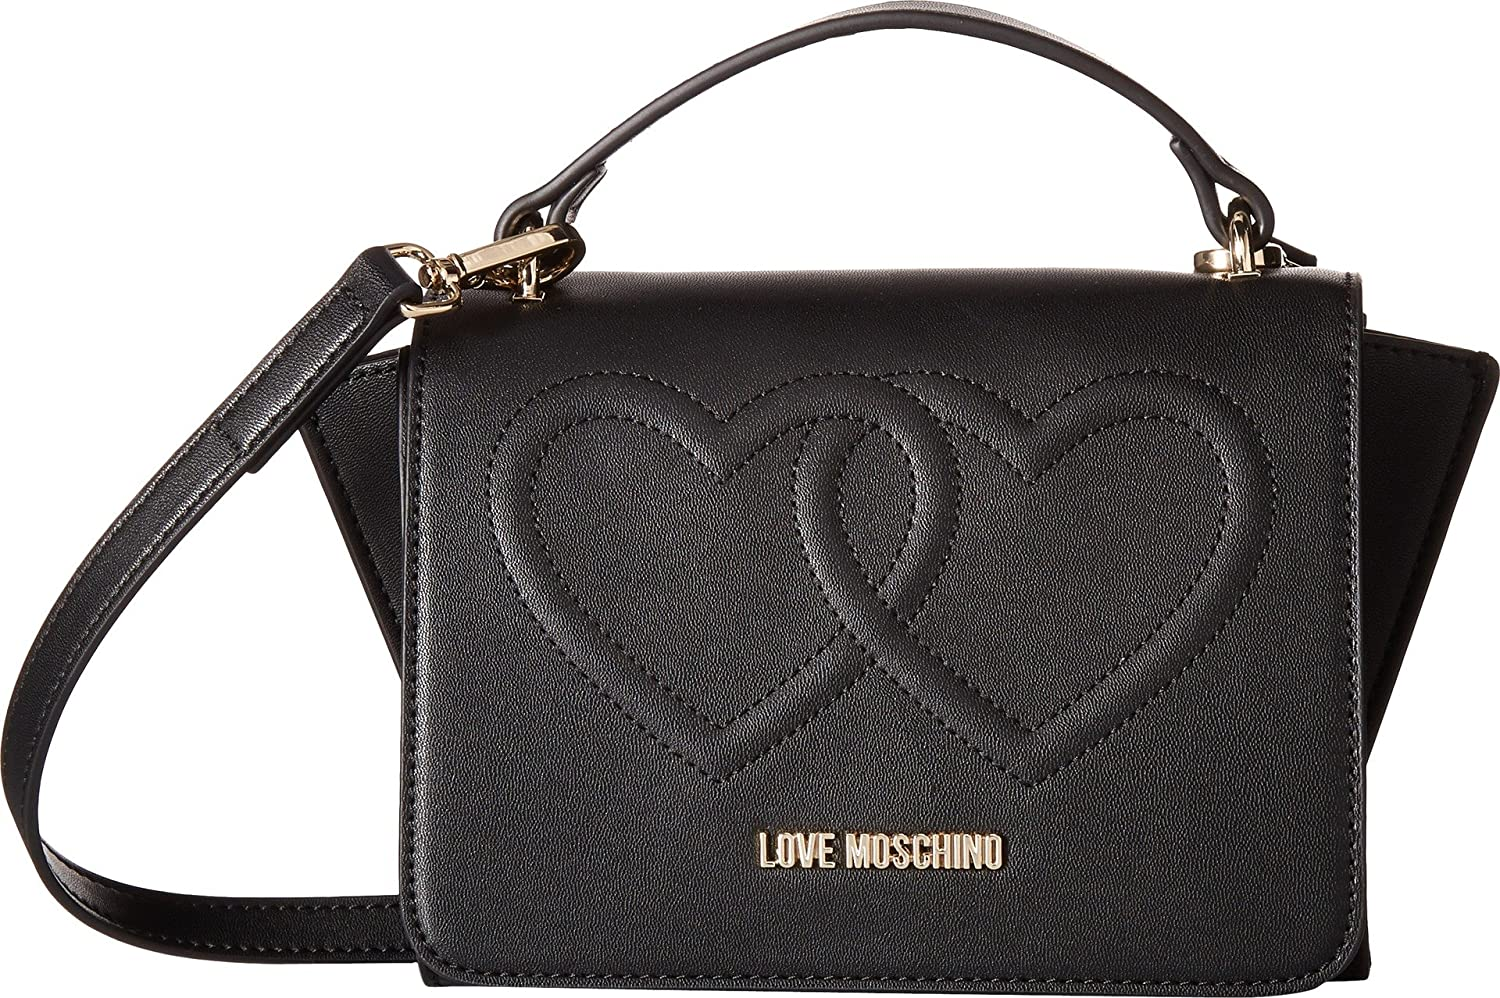 d715ce1ca3c6 Buy Love Moschino Women s Embossed Heart Crossbody with Handle Black One  Size Online at Low Prices in India - Amazon.in